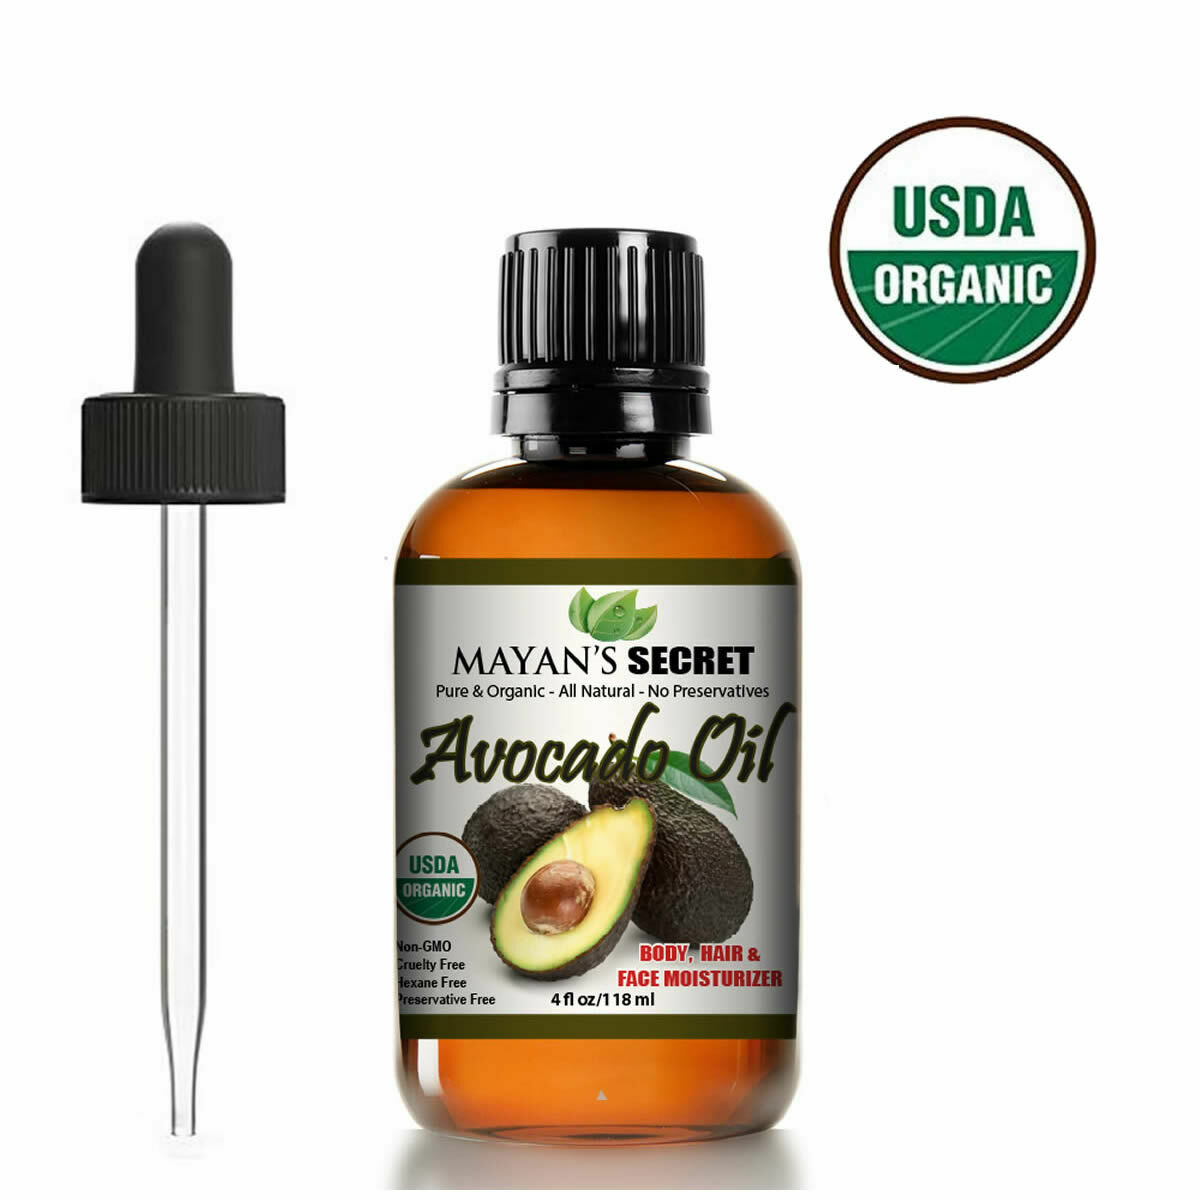 AVOCADO OIL UNREFINED 100% PURE VIRGIN CERTIFED USDA ORGANIC COLD PRESSED  4 OZ Health & Beauty